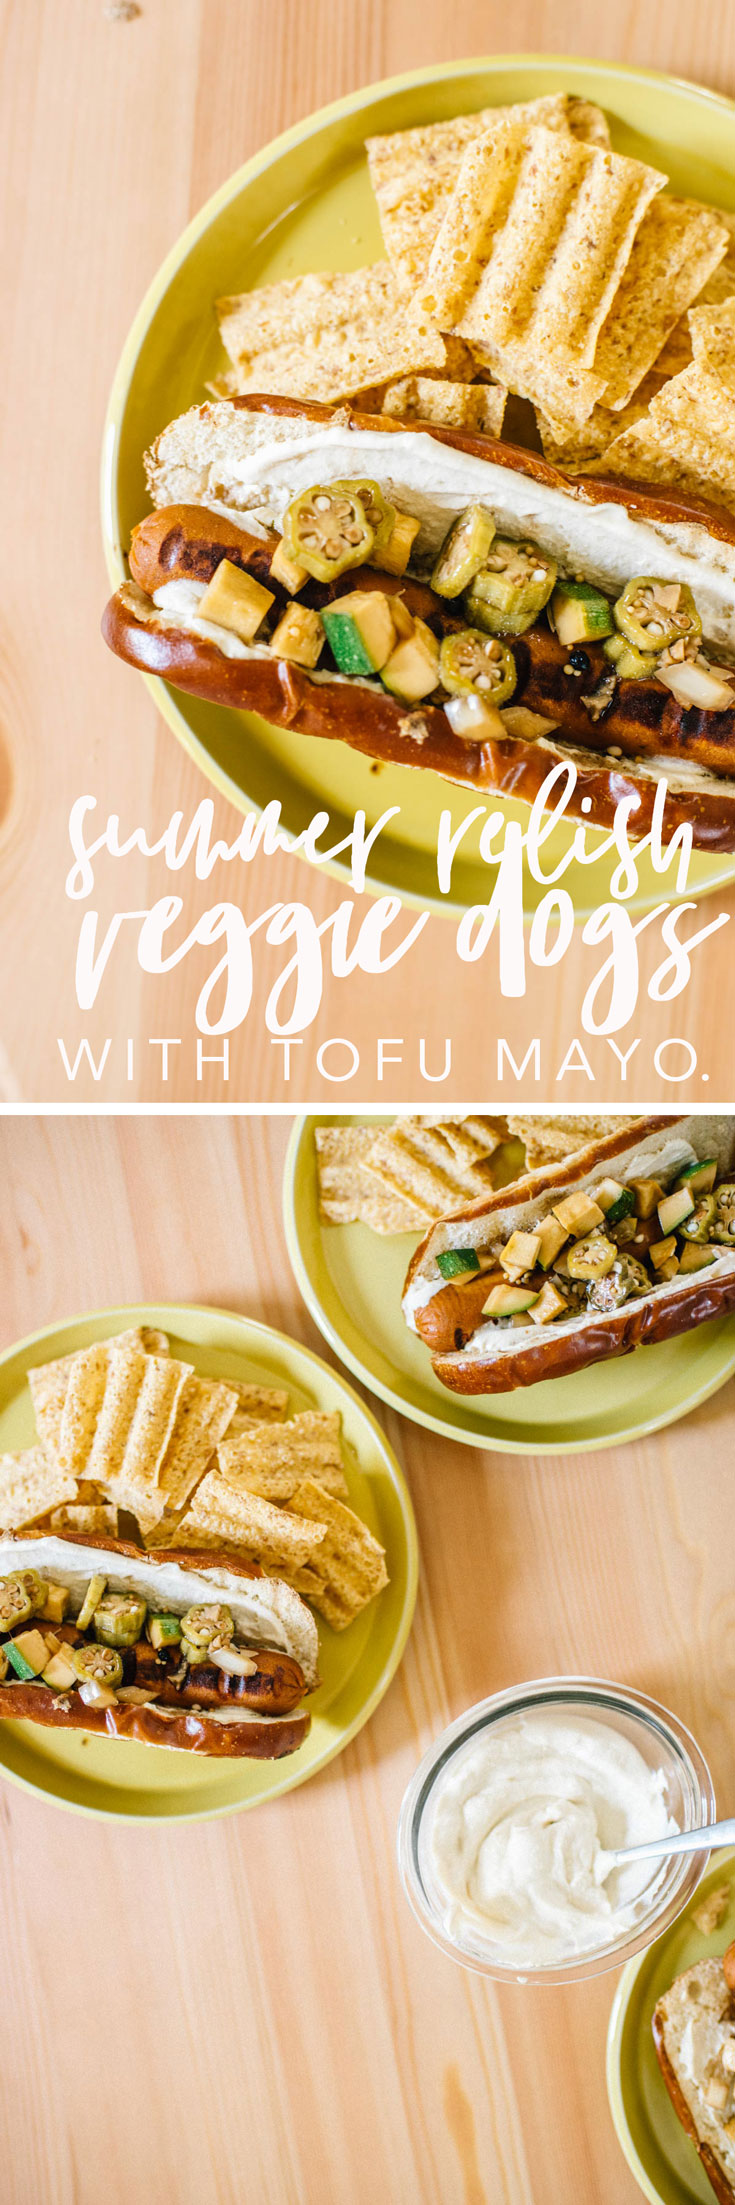 Use up that squash and okra by making these Summer Relish Veggie Dogs with Tofu Mayo! It's the most delicious (vegan) way to celebrate the end of summer. #vegan #veggiedogs #summerrelish #okra #squash #plantbased #tofumayo | Brewing Happiness